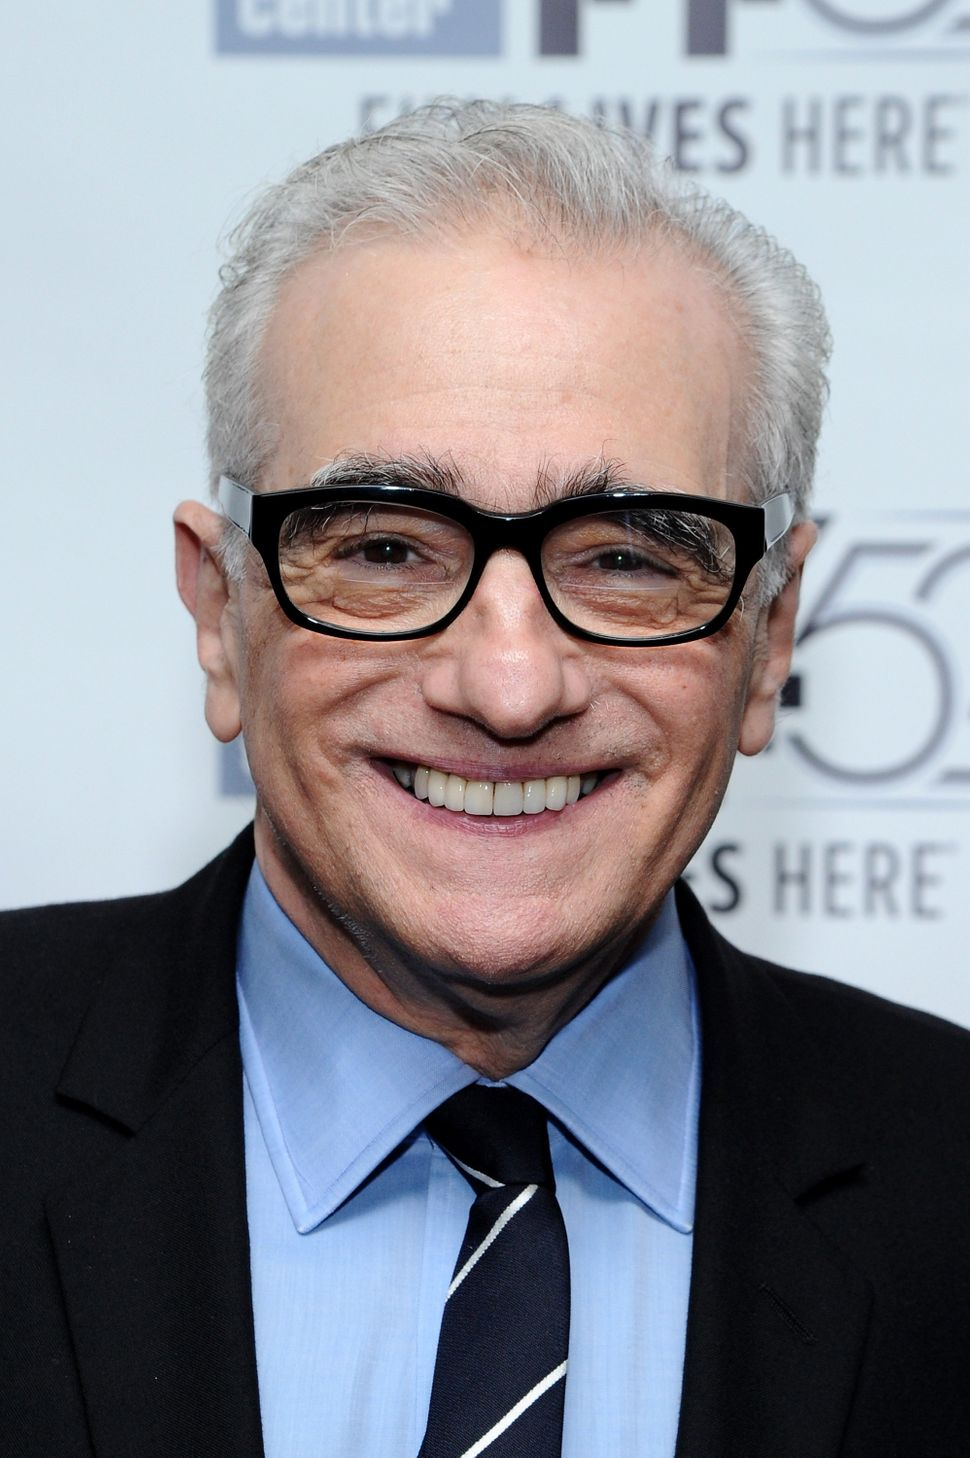 Director Martin Scorsese attends the 'The 50 Year Argument' premiere during the 52nd New York Film Festival at Walter Reade T